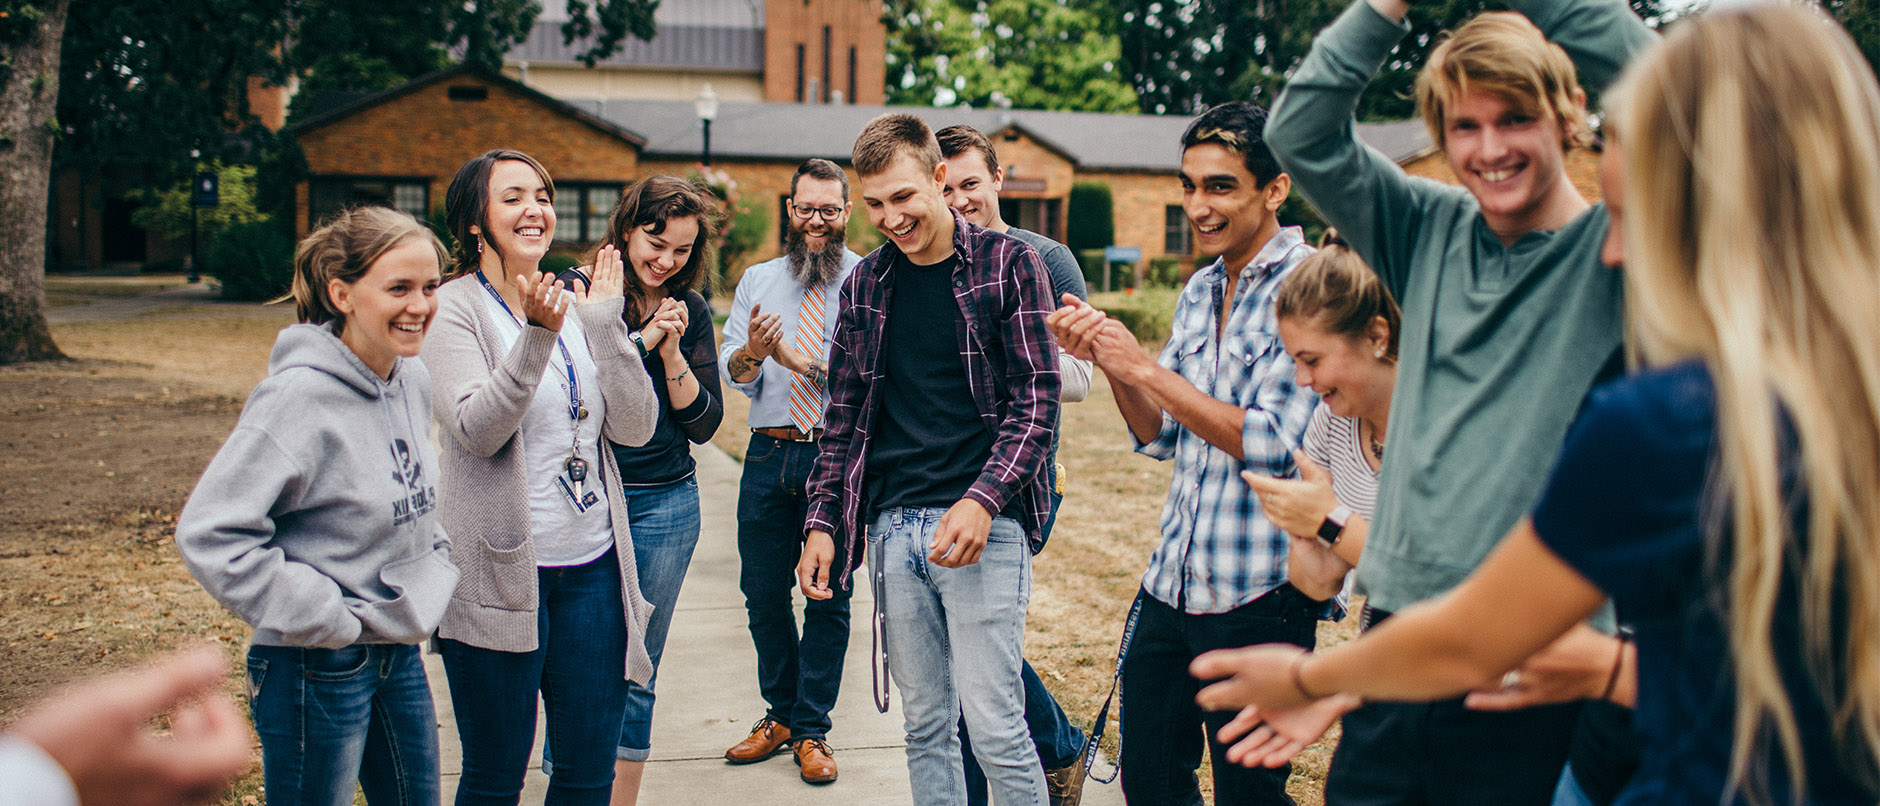 George Fox Christian ministries majors study at a top Christian college.